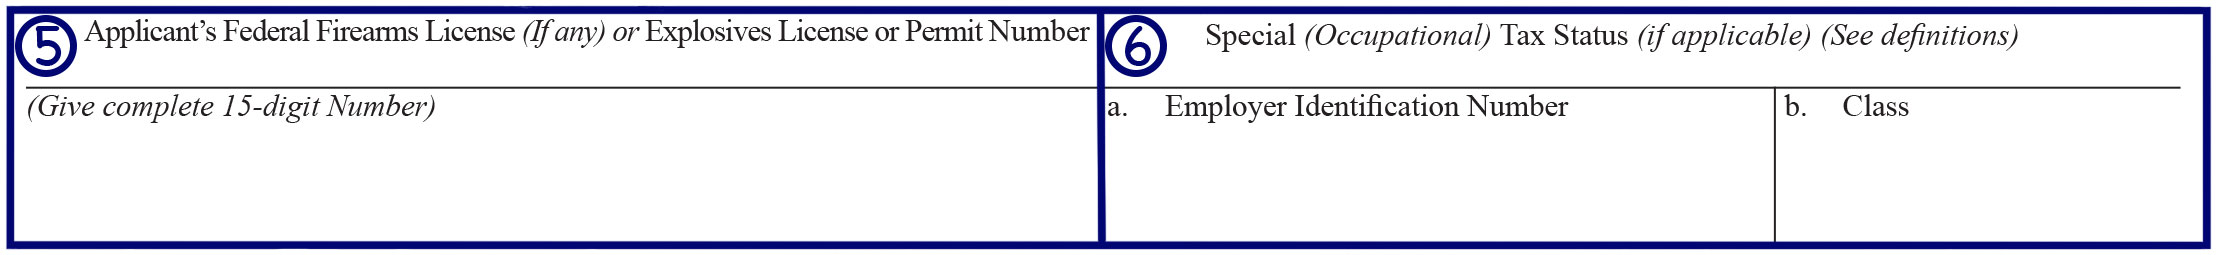 Form 1 Boxes 5-6